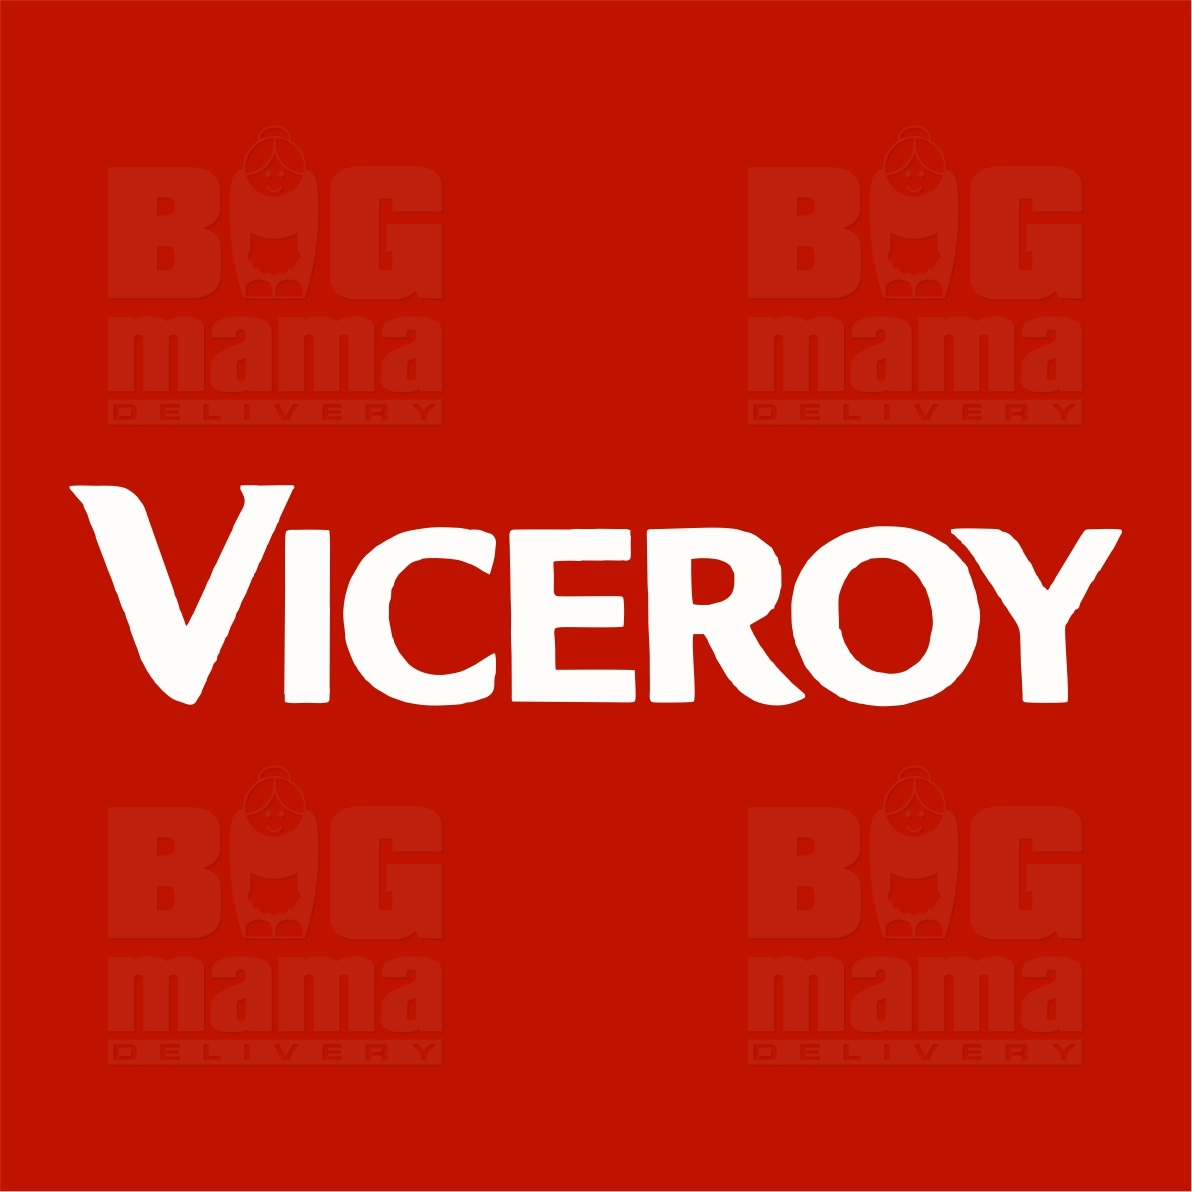 Product #159 image - Viceroy